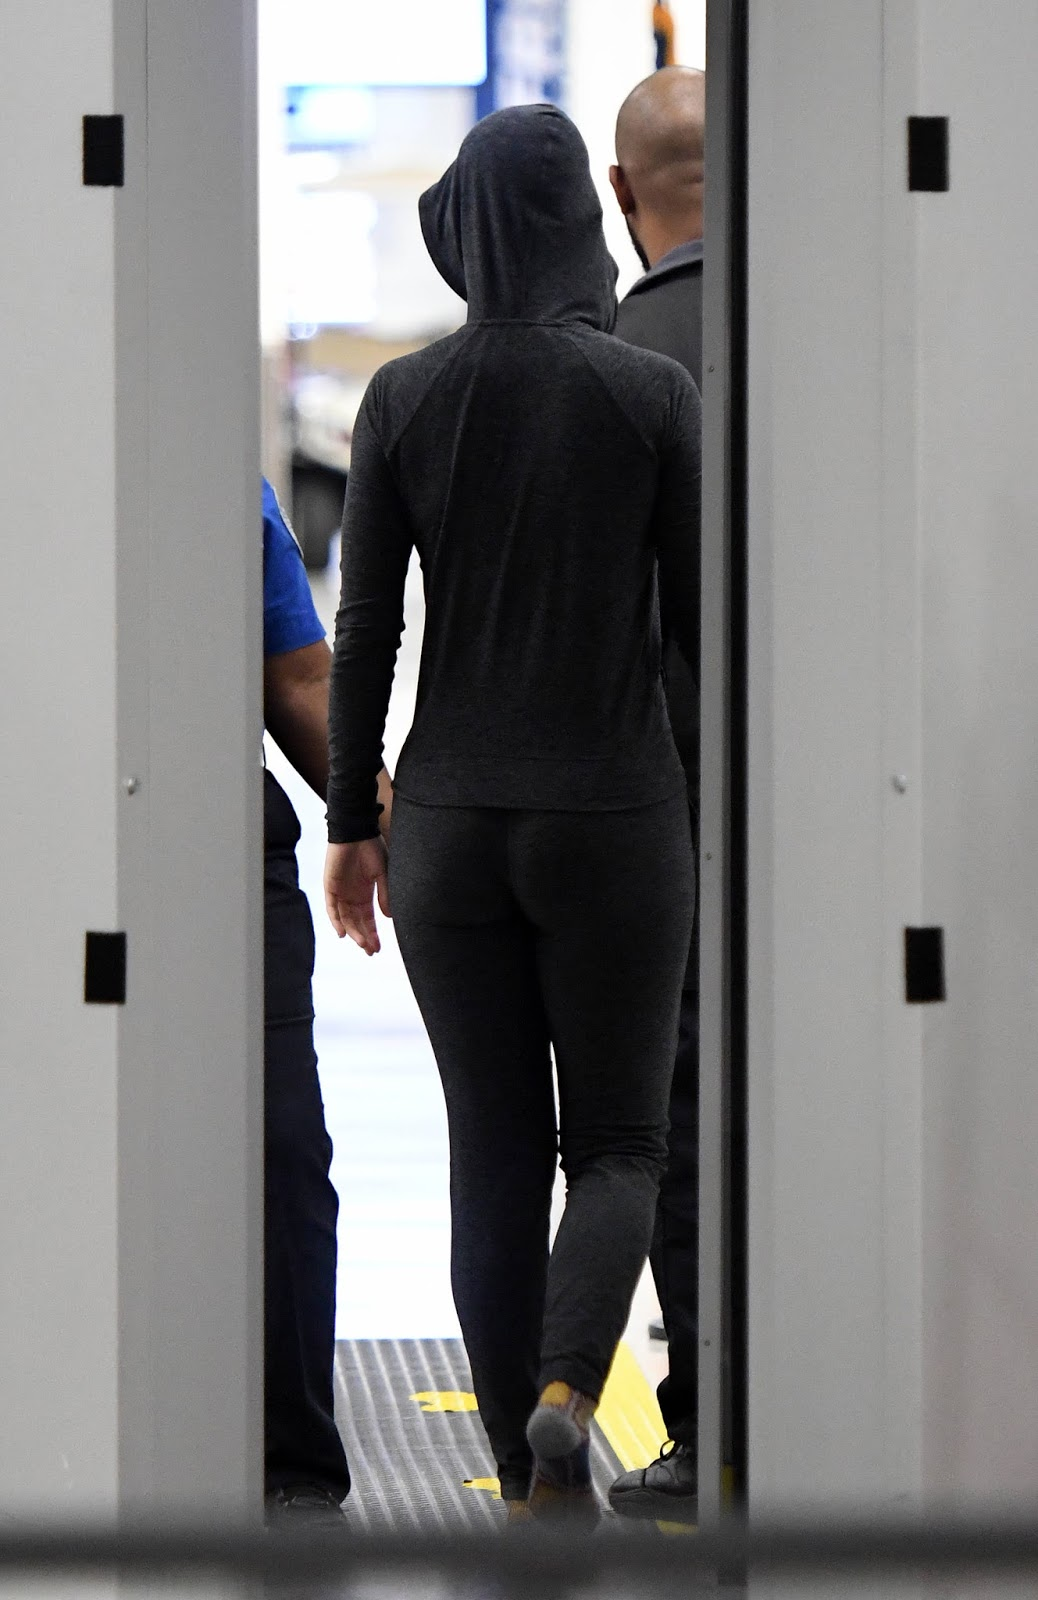 Katy Perry Booty at Miami International Airport